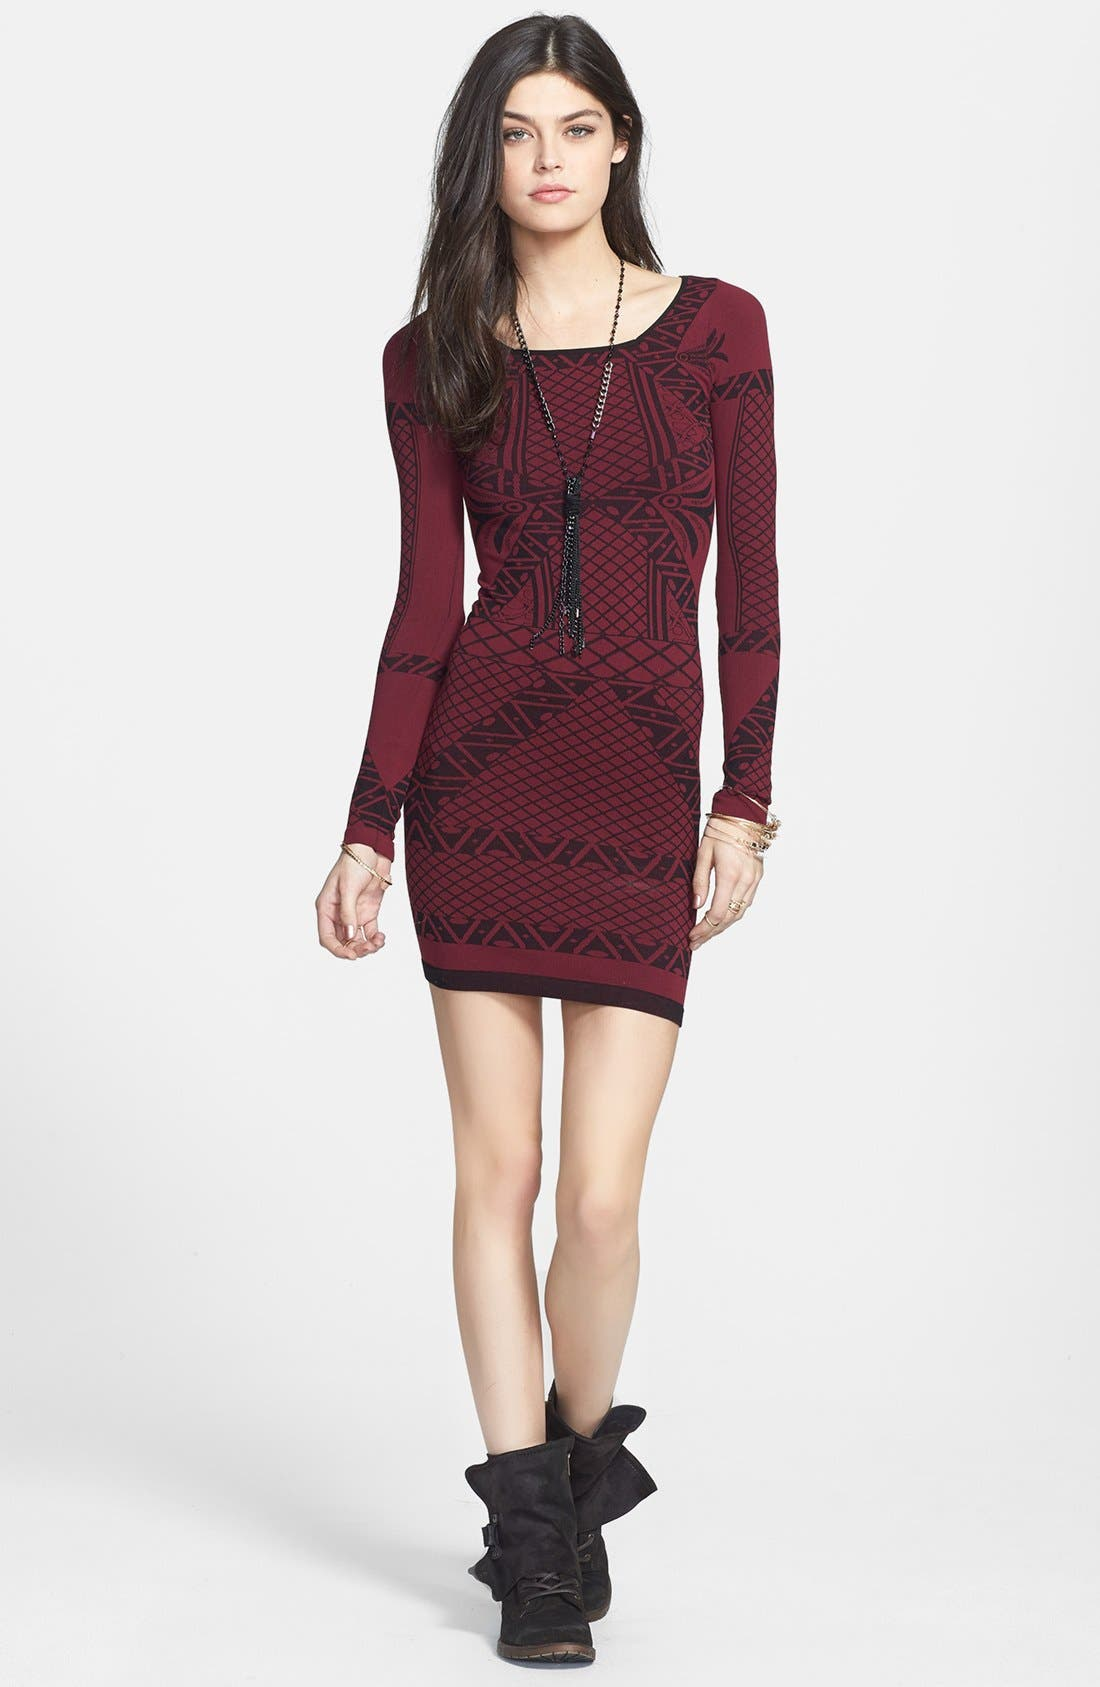 Alternate Image 1 Selected - Free People 'Angles of Intarsia' Body-Con Dress